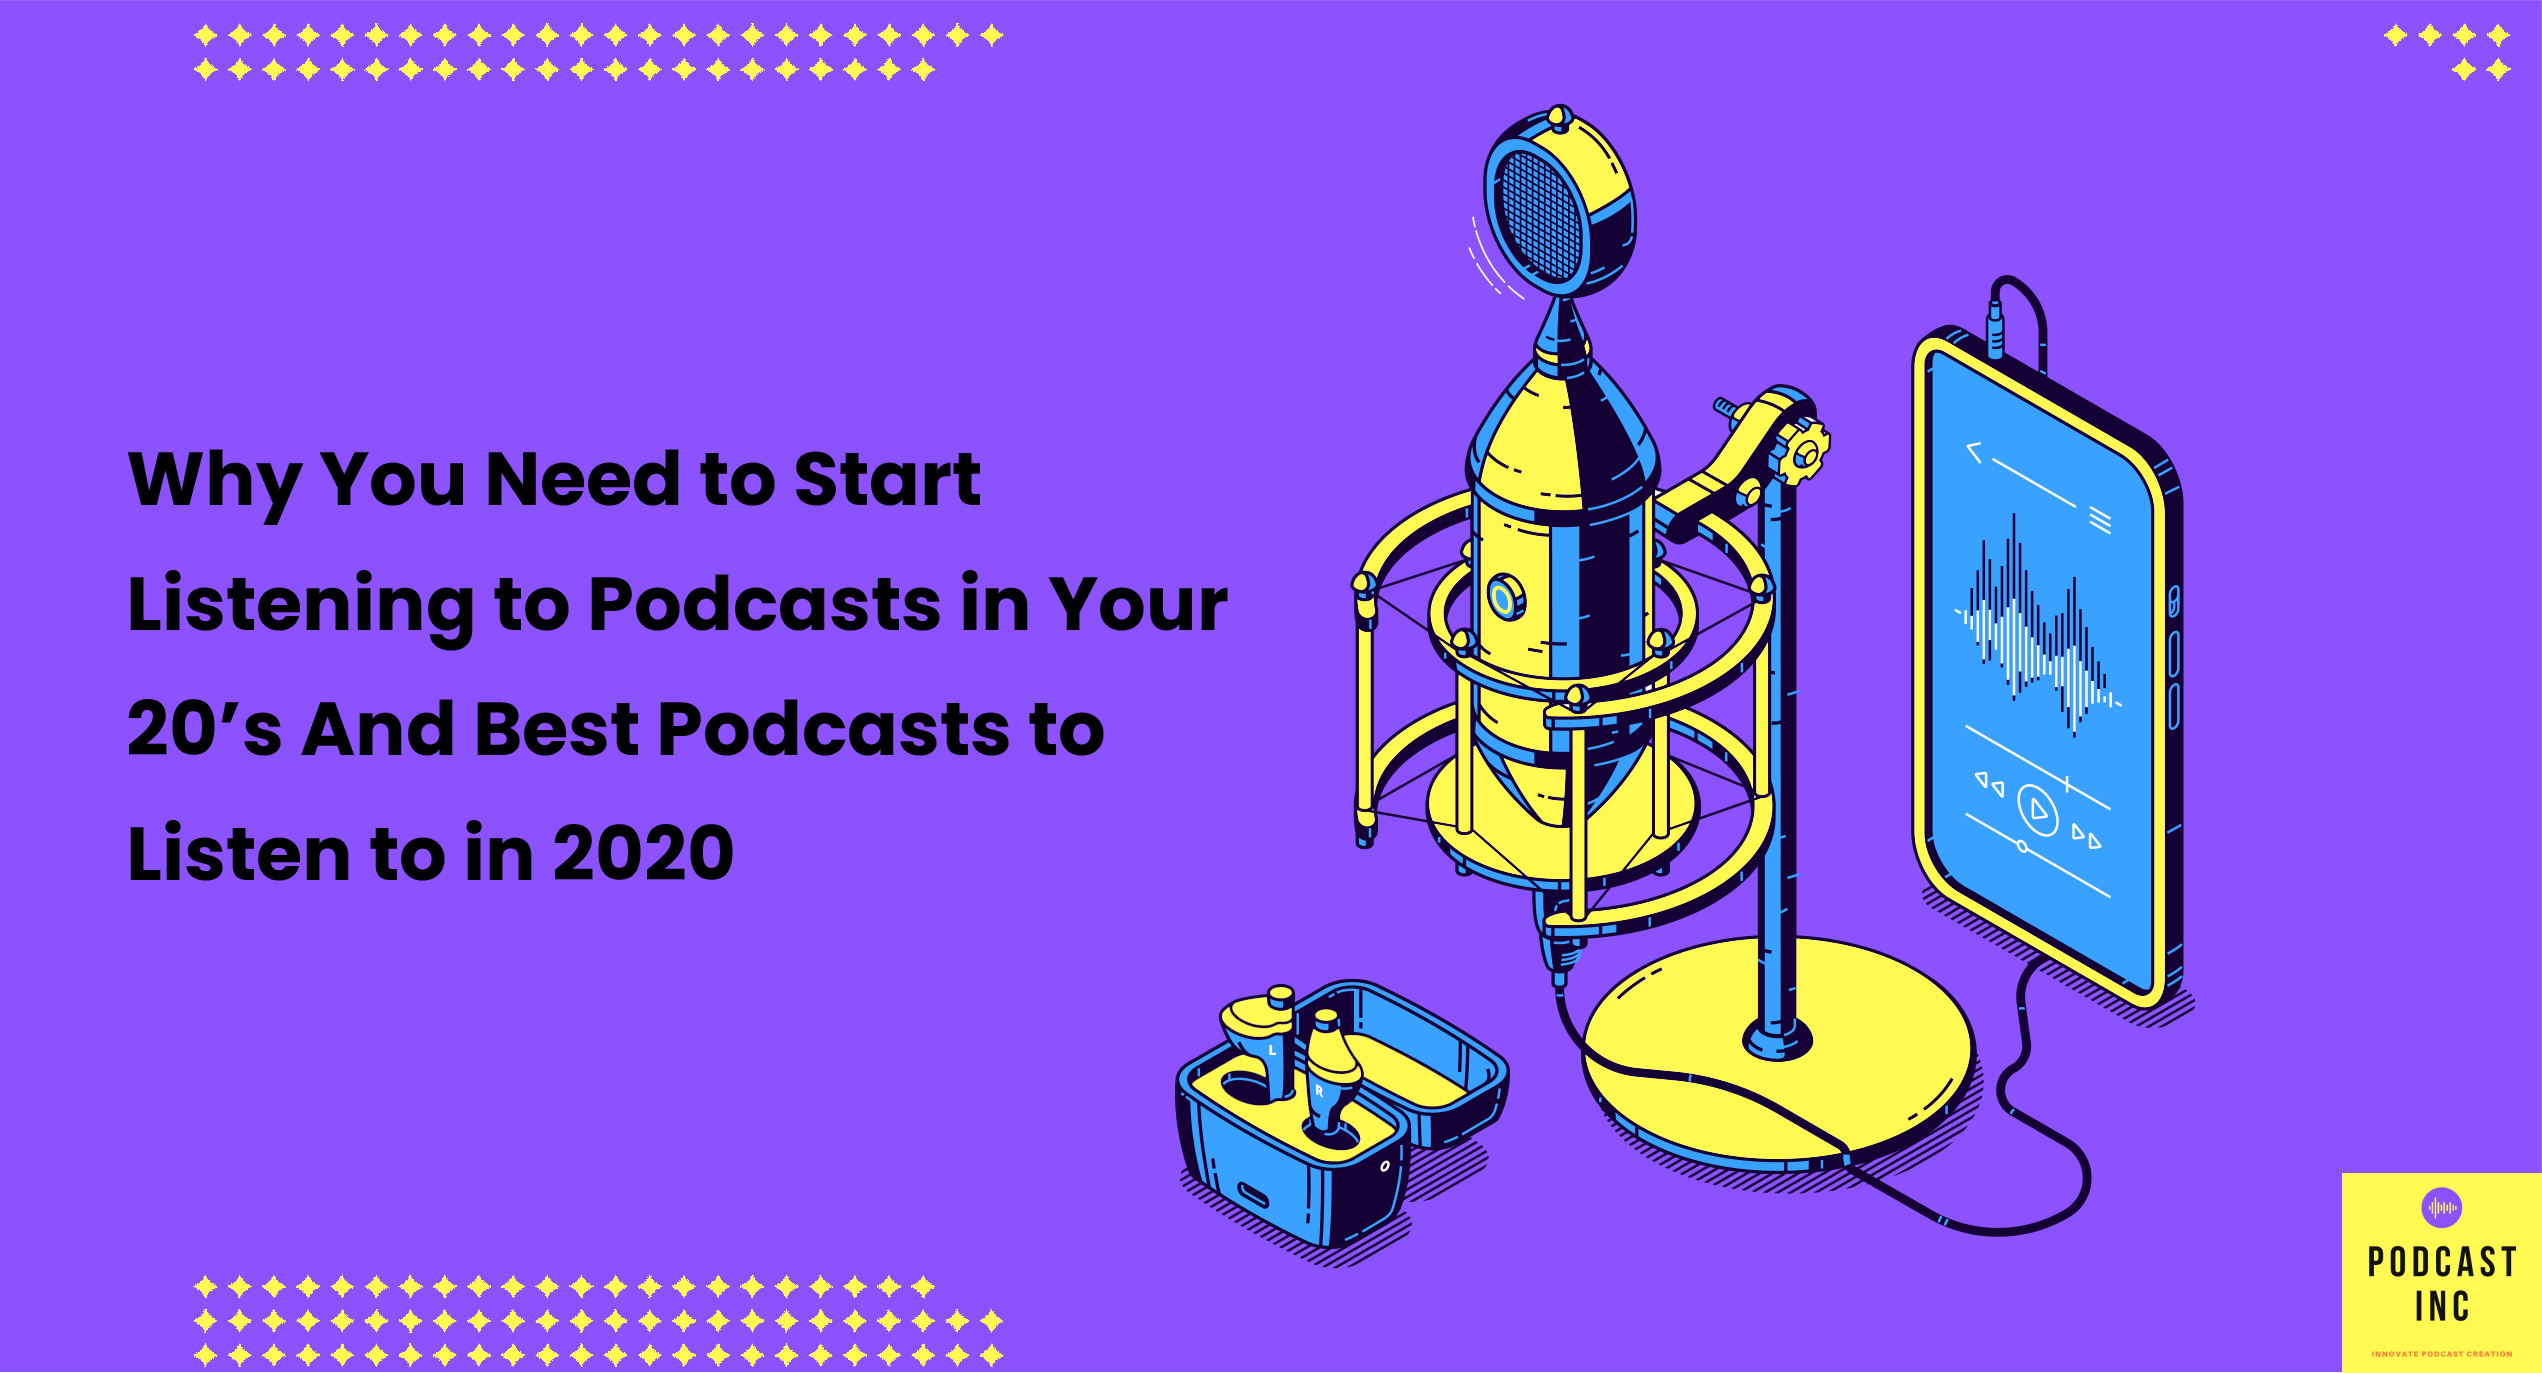 Why You Need to Start Listening to Podcasts in Your 20's & Best Podcasts to Listen to in 2020